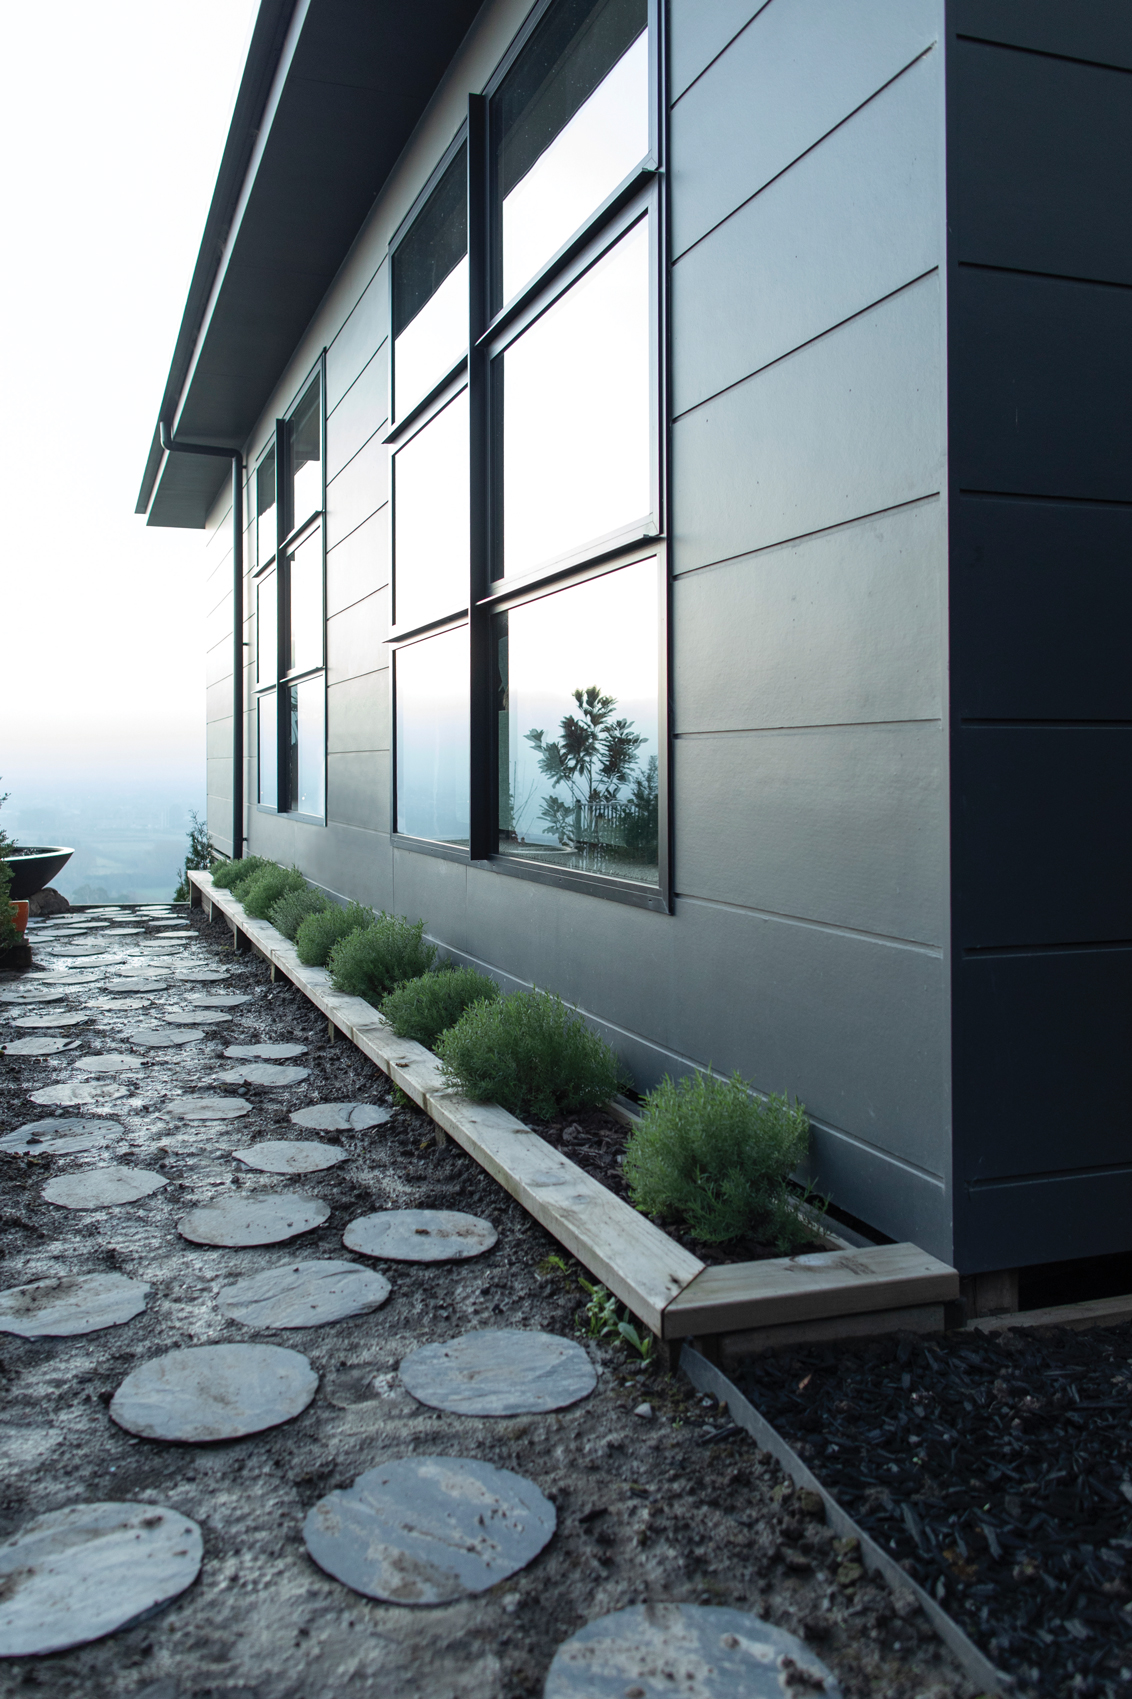 Exterior cladding:  James Hardie Stria cladding in light grey gives a timeless look to the exterior.